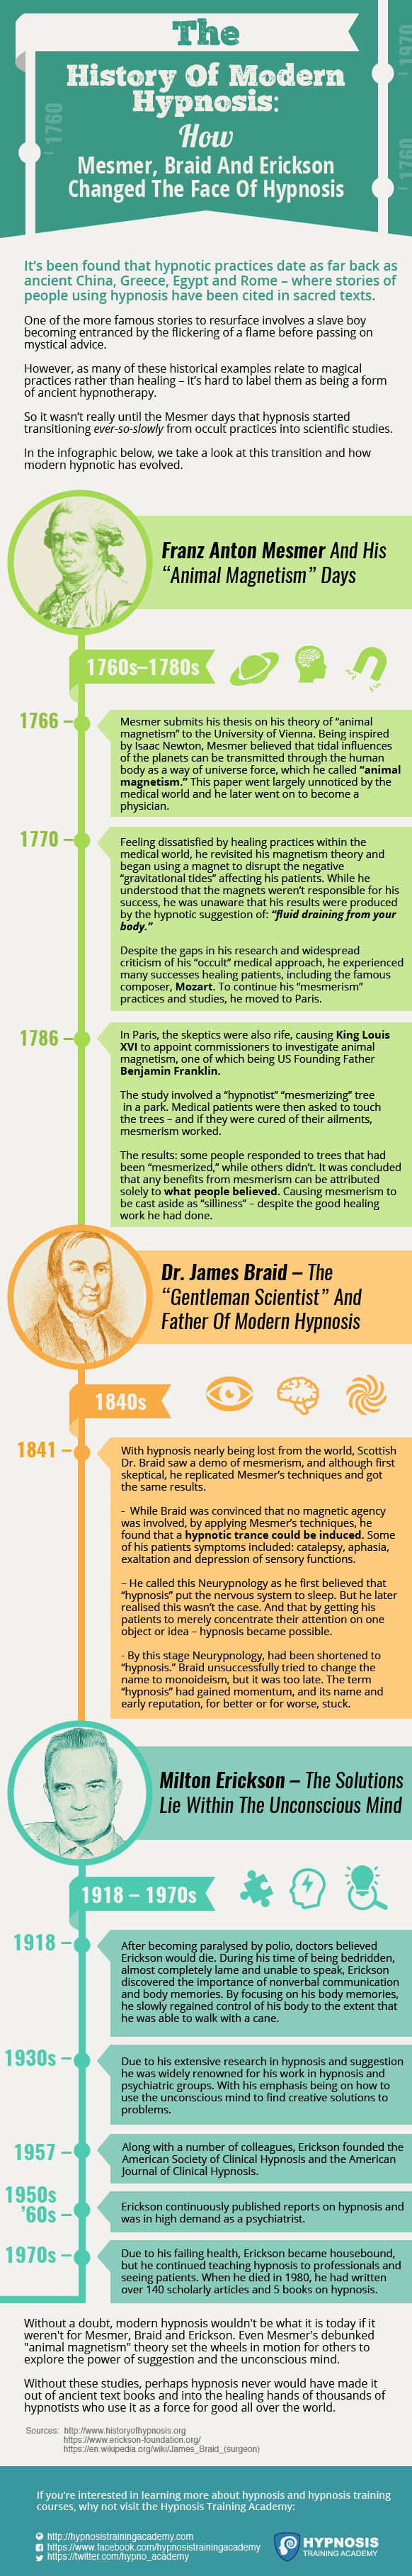 history of hypnosis infographic